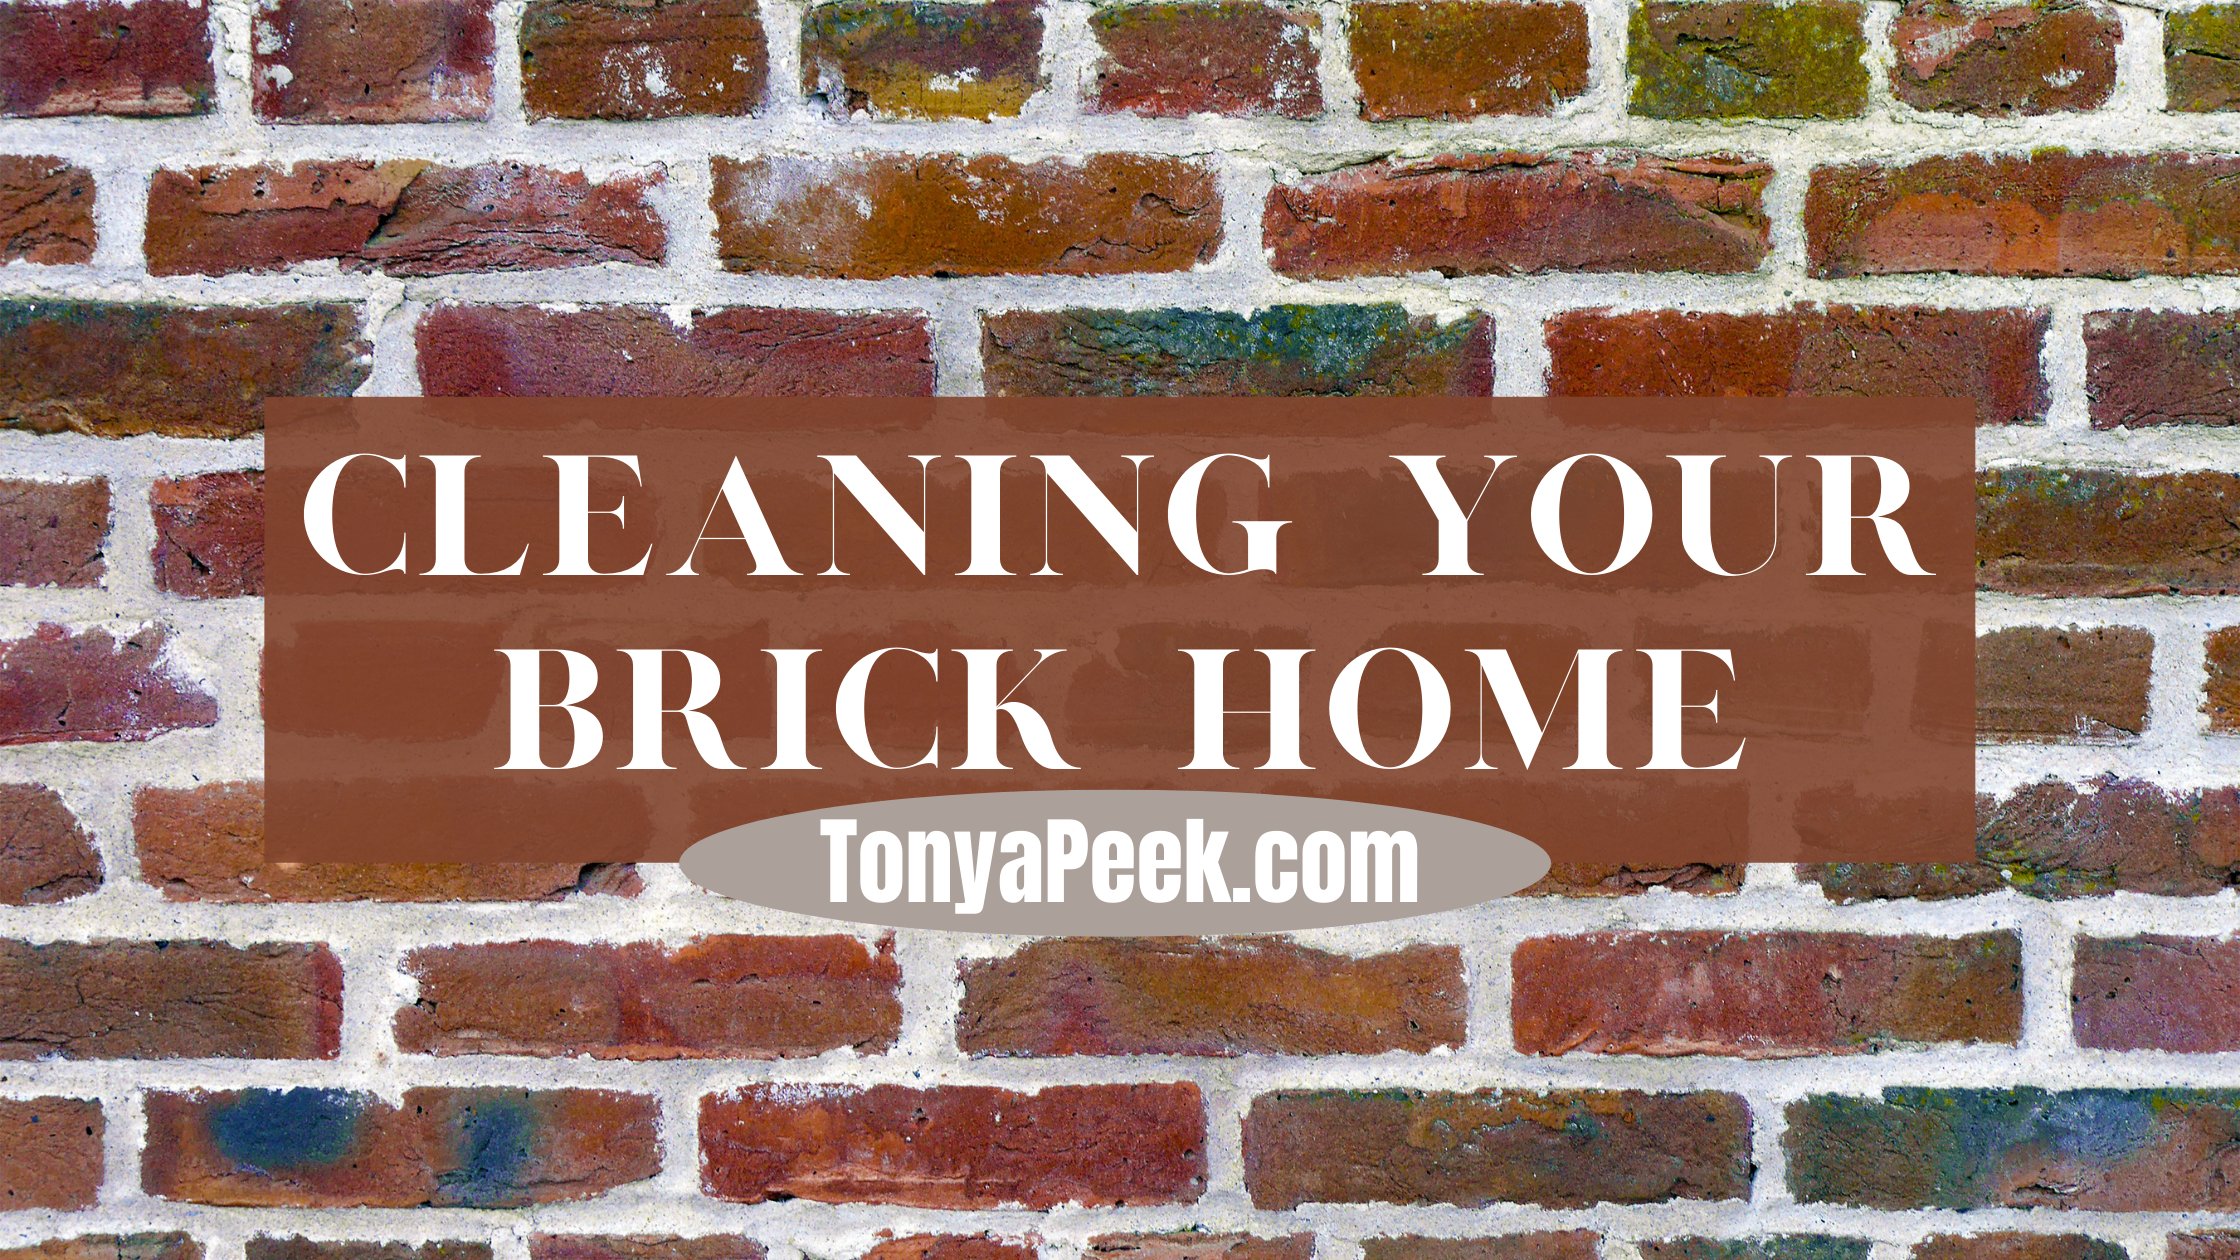 How to Keep Your Brick Home Looking Its Best